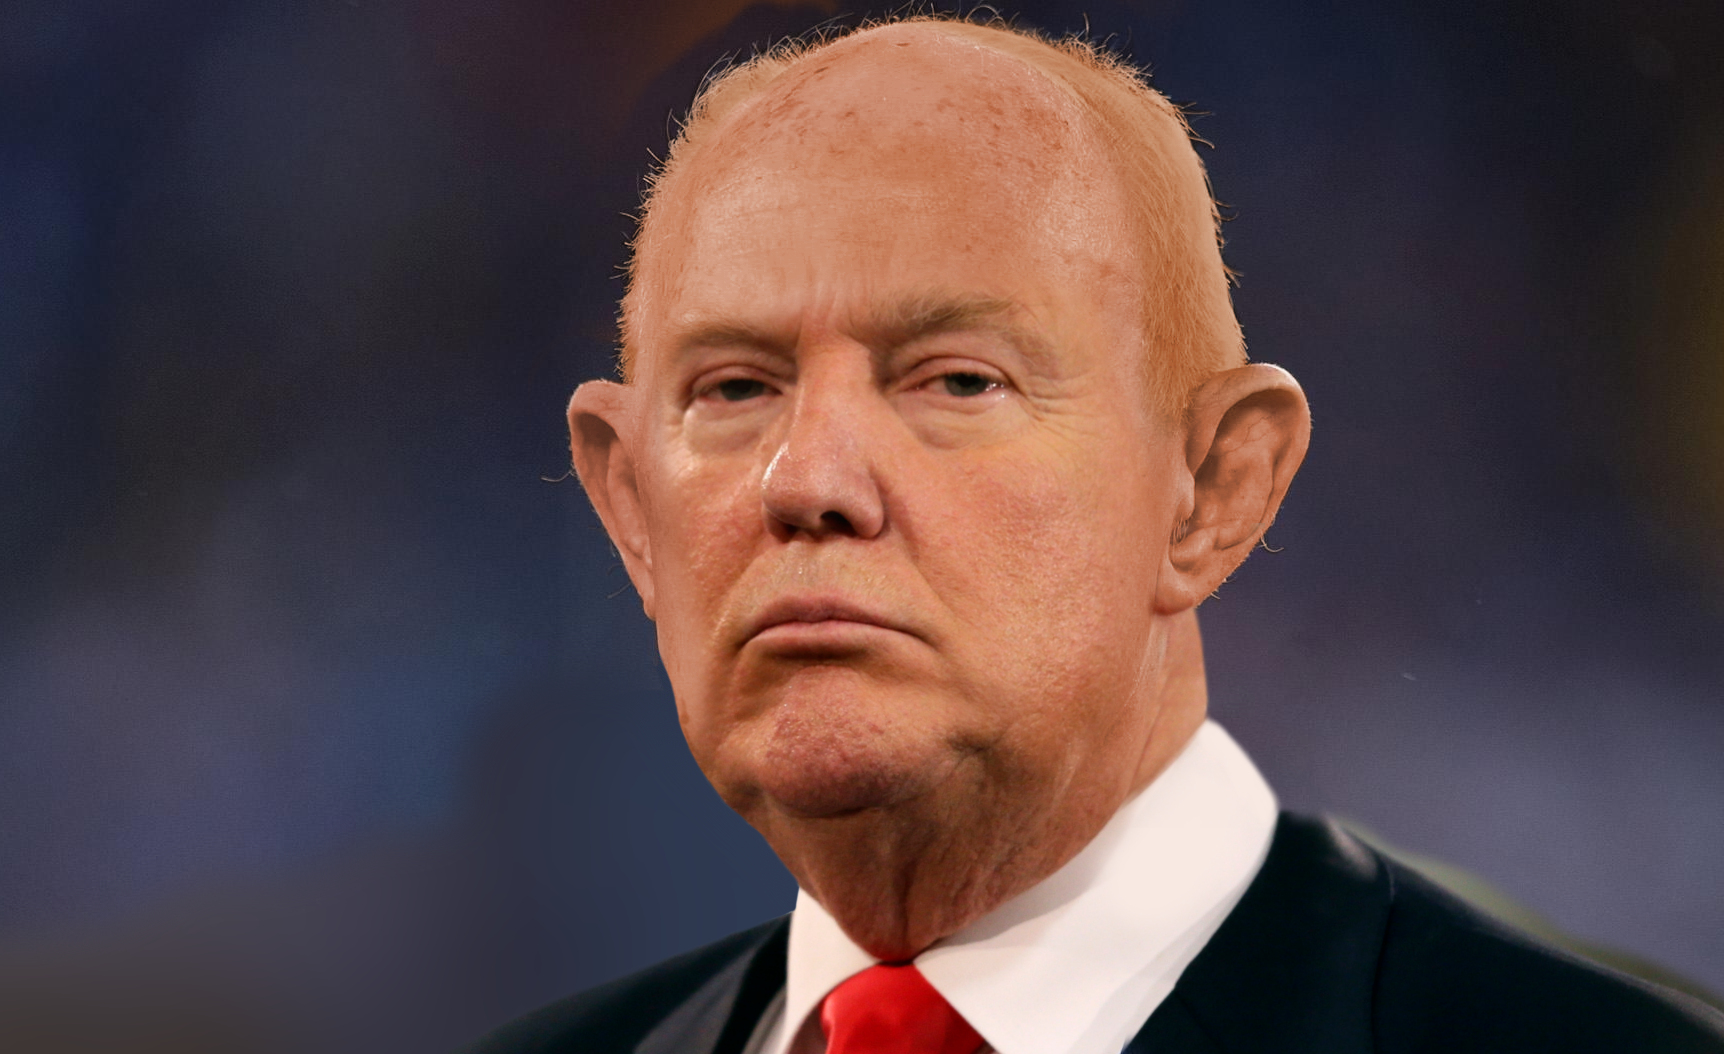 Bald Donald Trump hobbles after his hair after a gust of wind stole it right off his head.